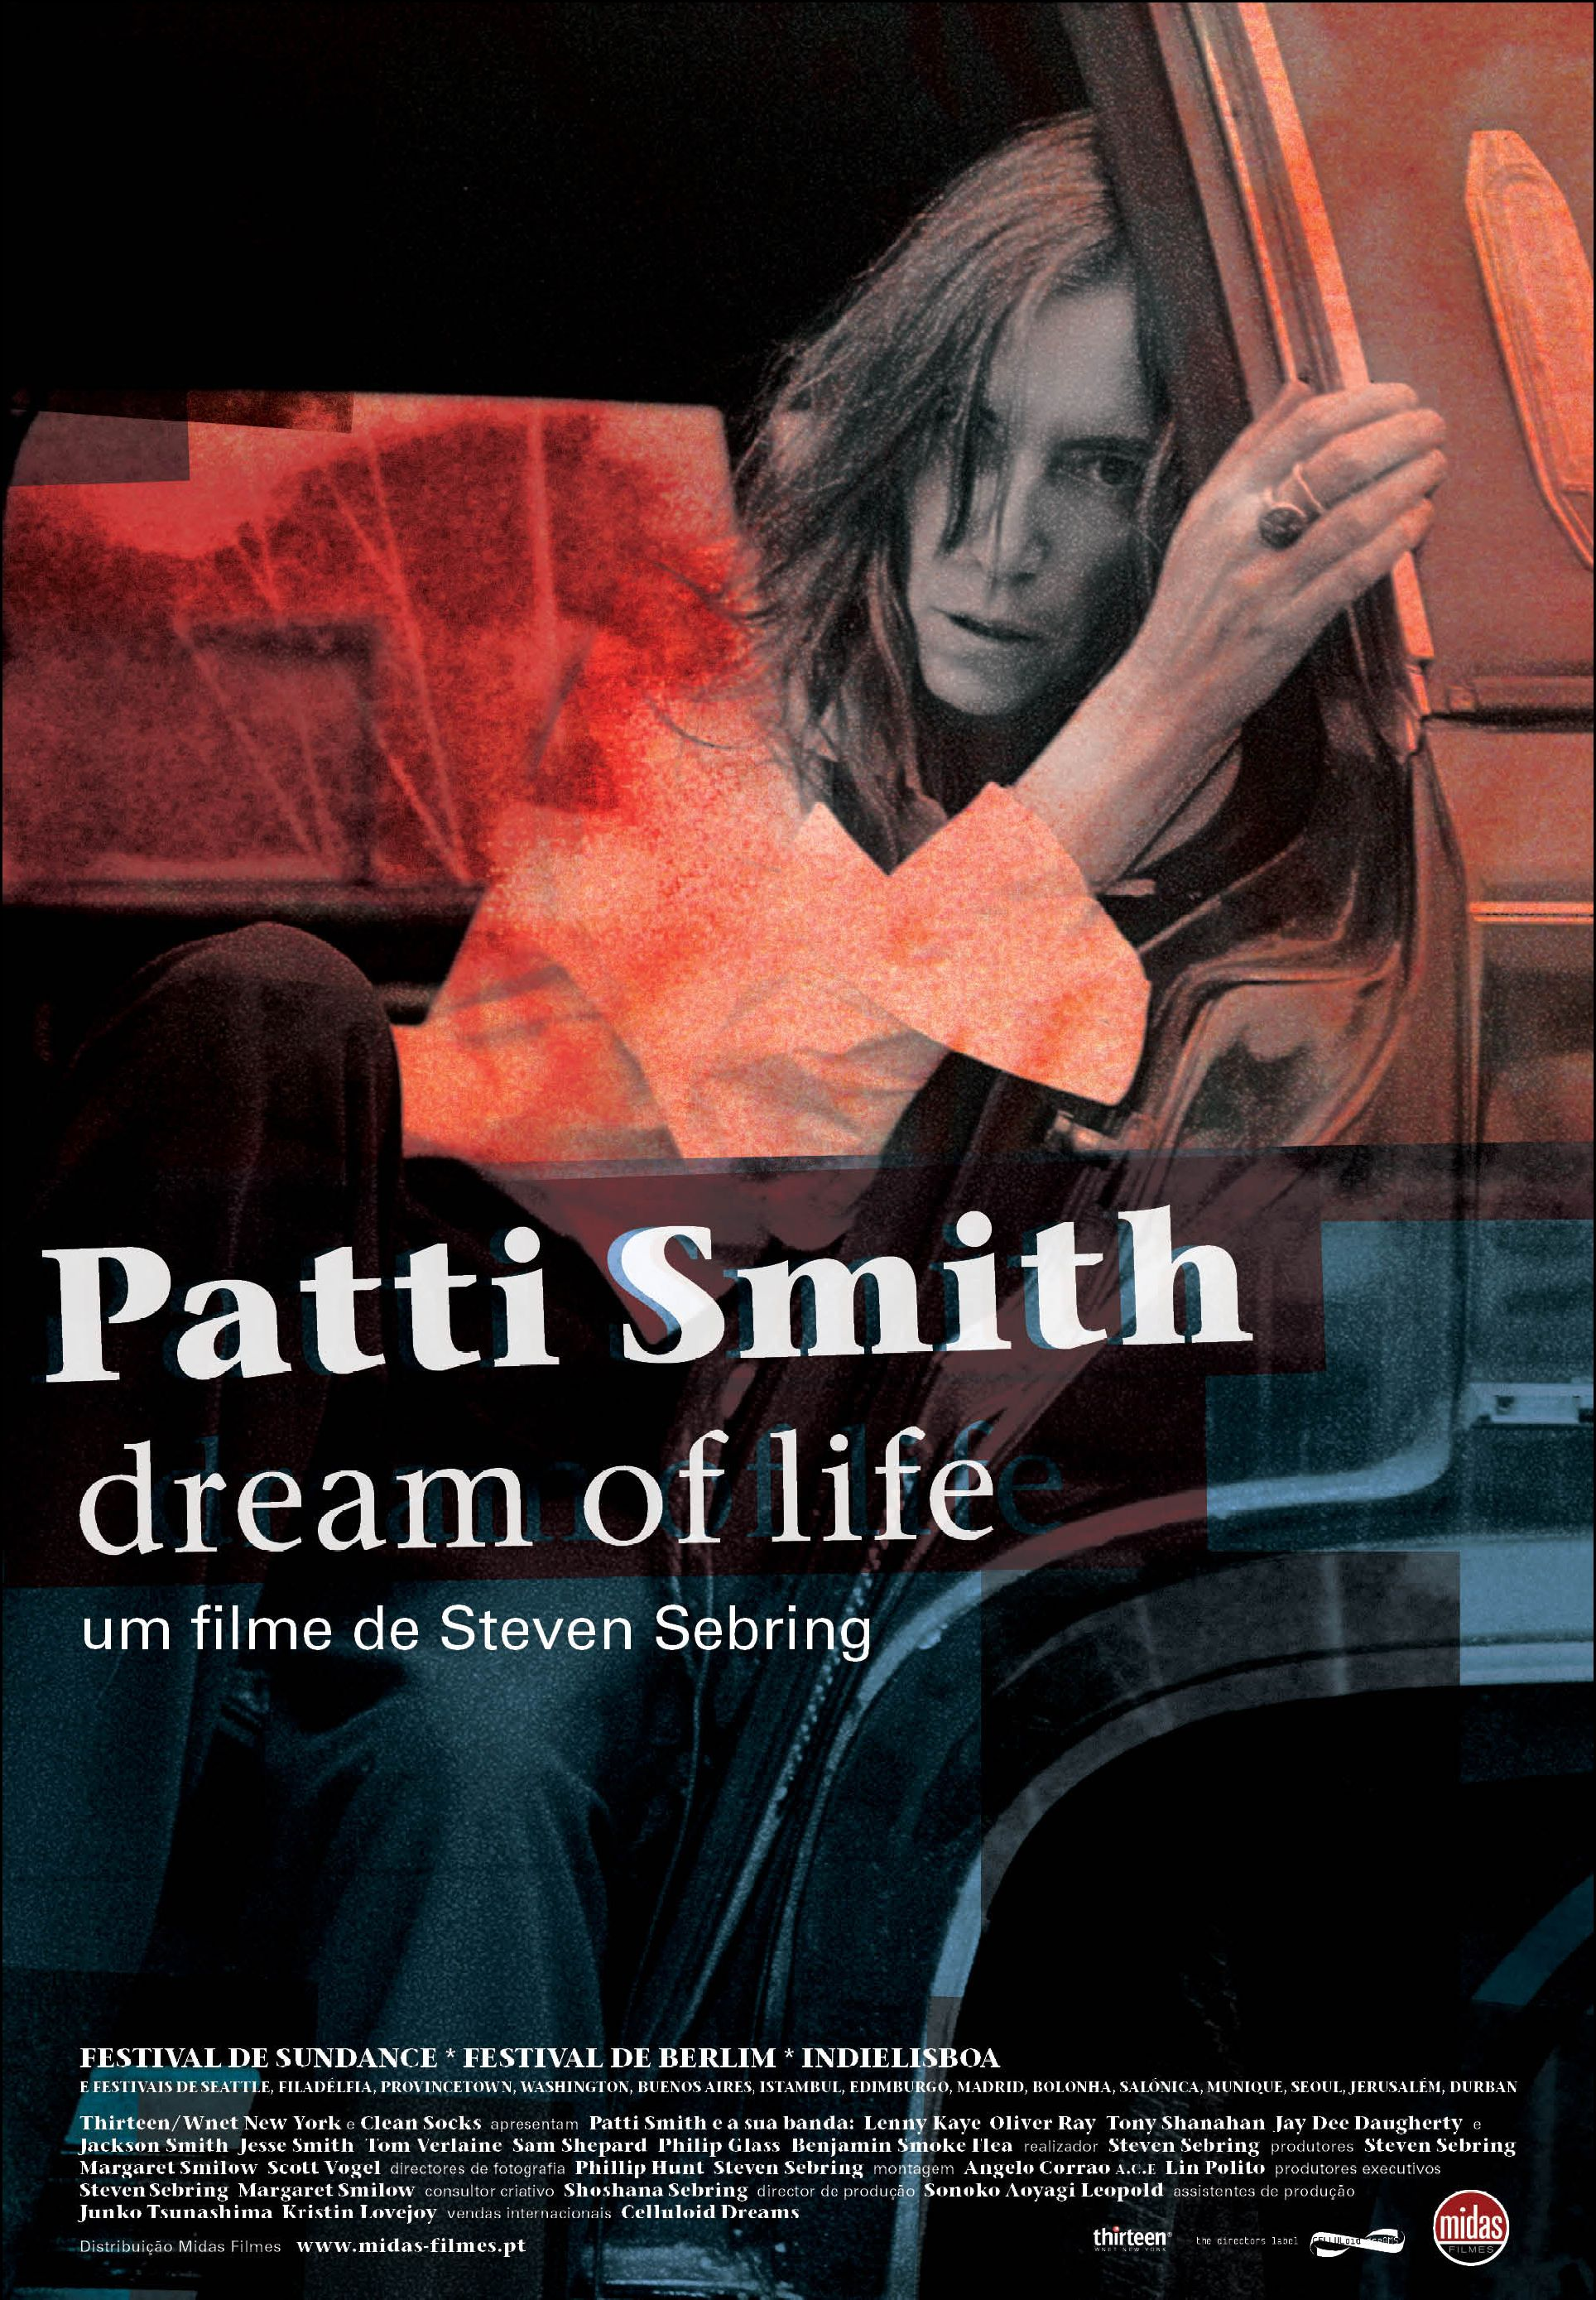 a biography of the early life of patti smith Find patti smith biography and history on allmusic a regular at cbgb's during the early days of new york punk patti smith: dream of life.